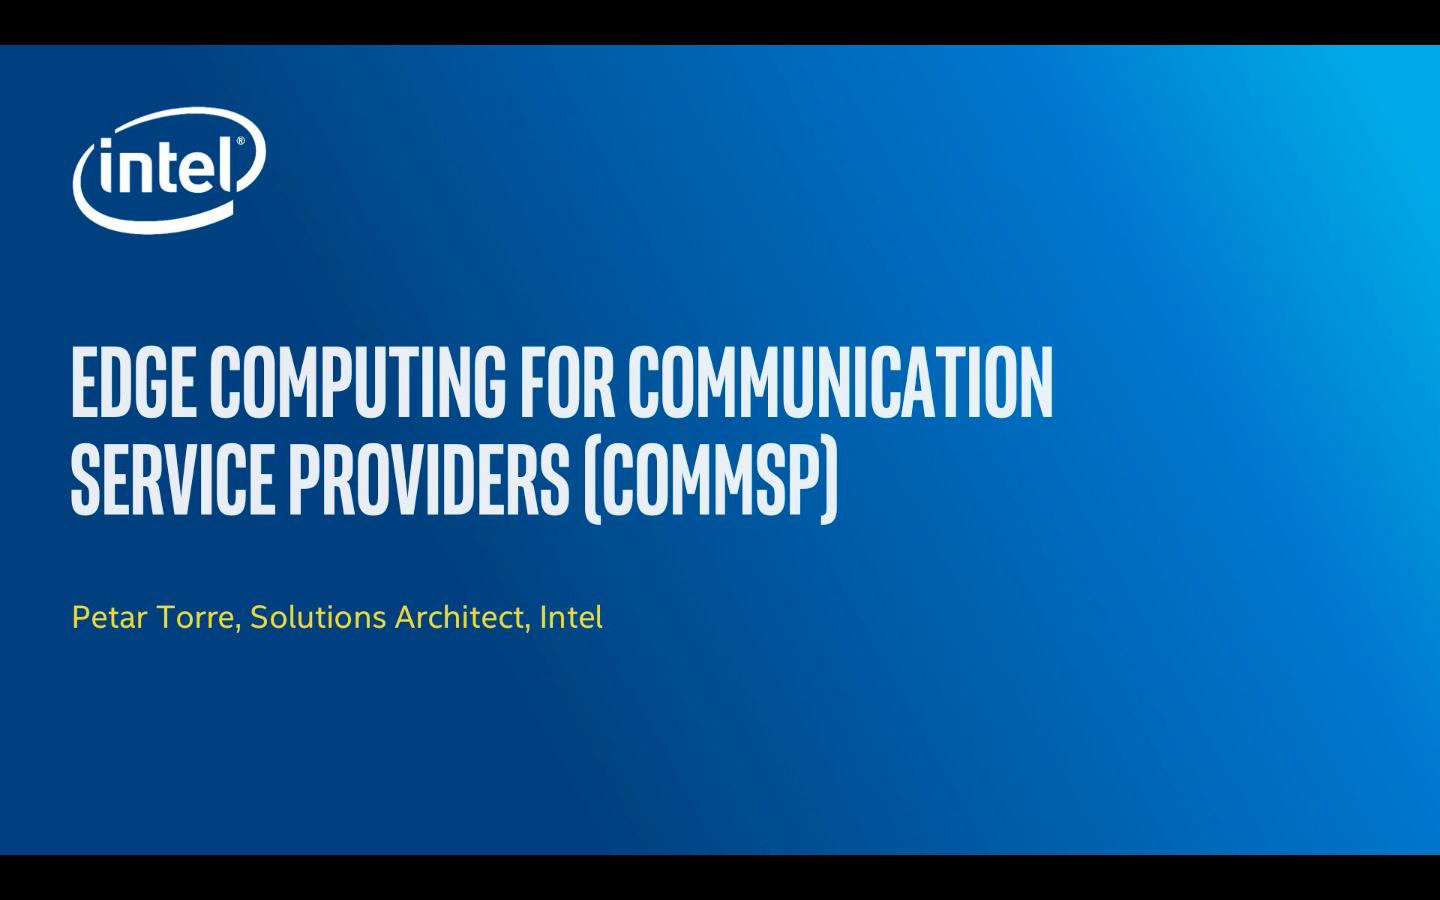 Chapter 1: Edge Computing for Communication  Service Providers